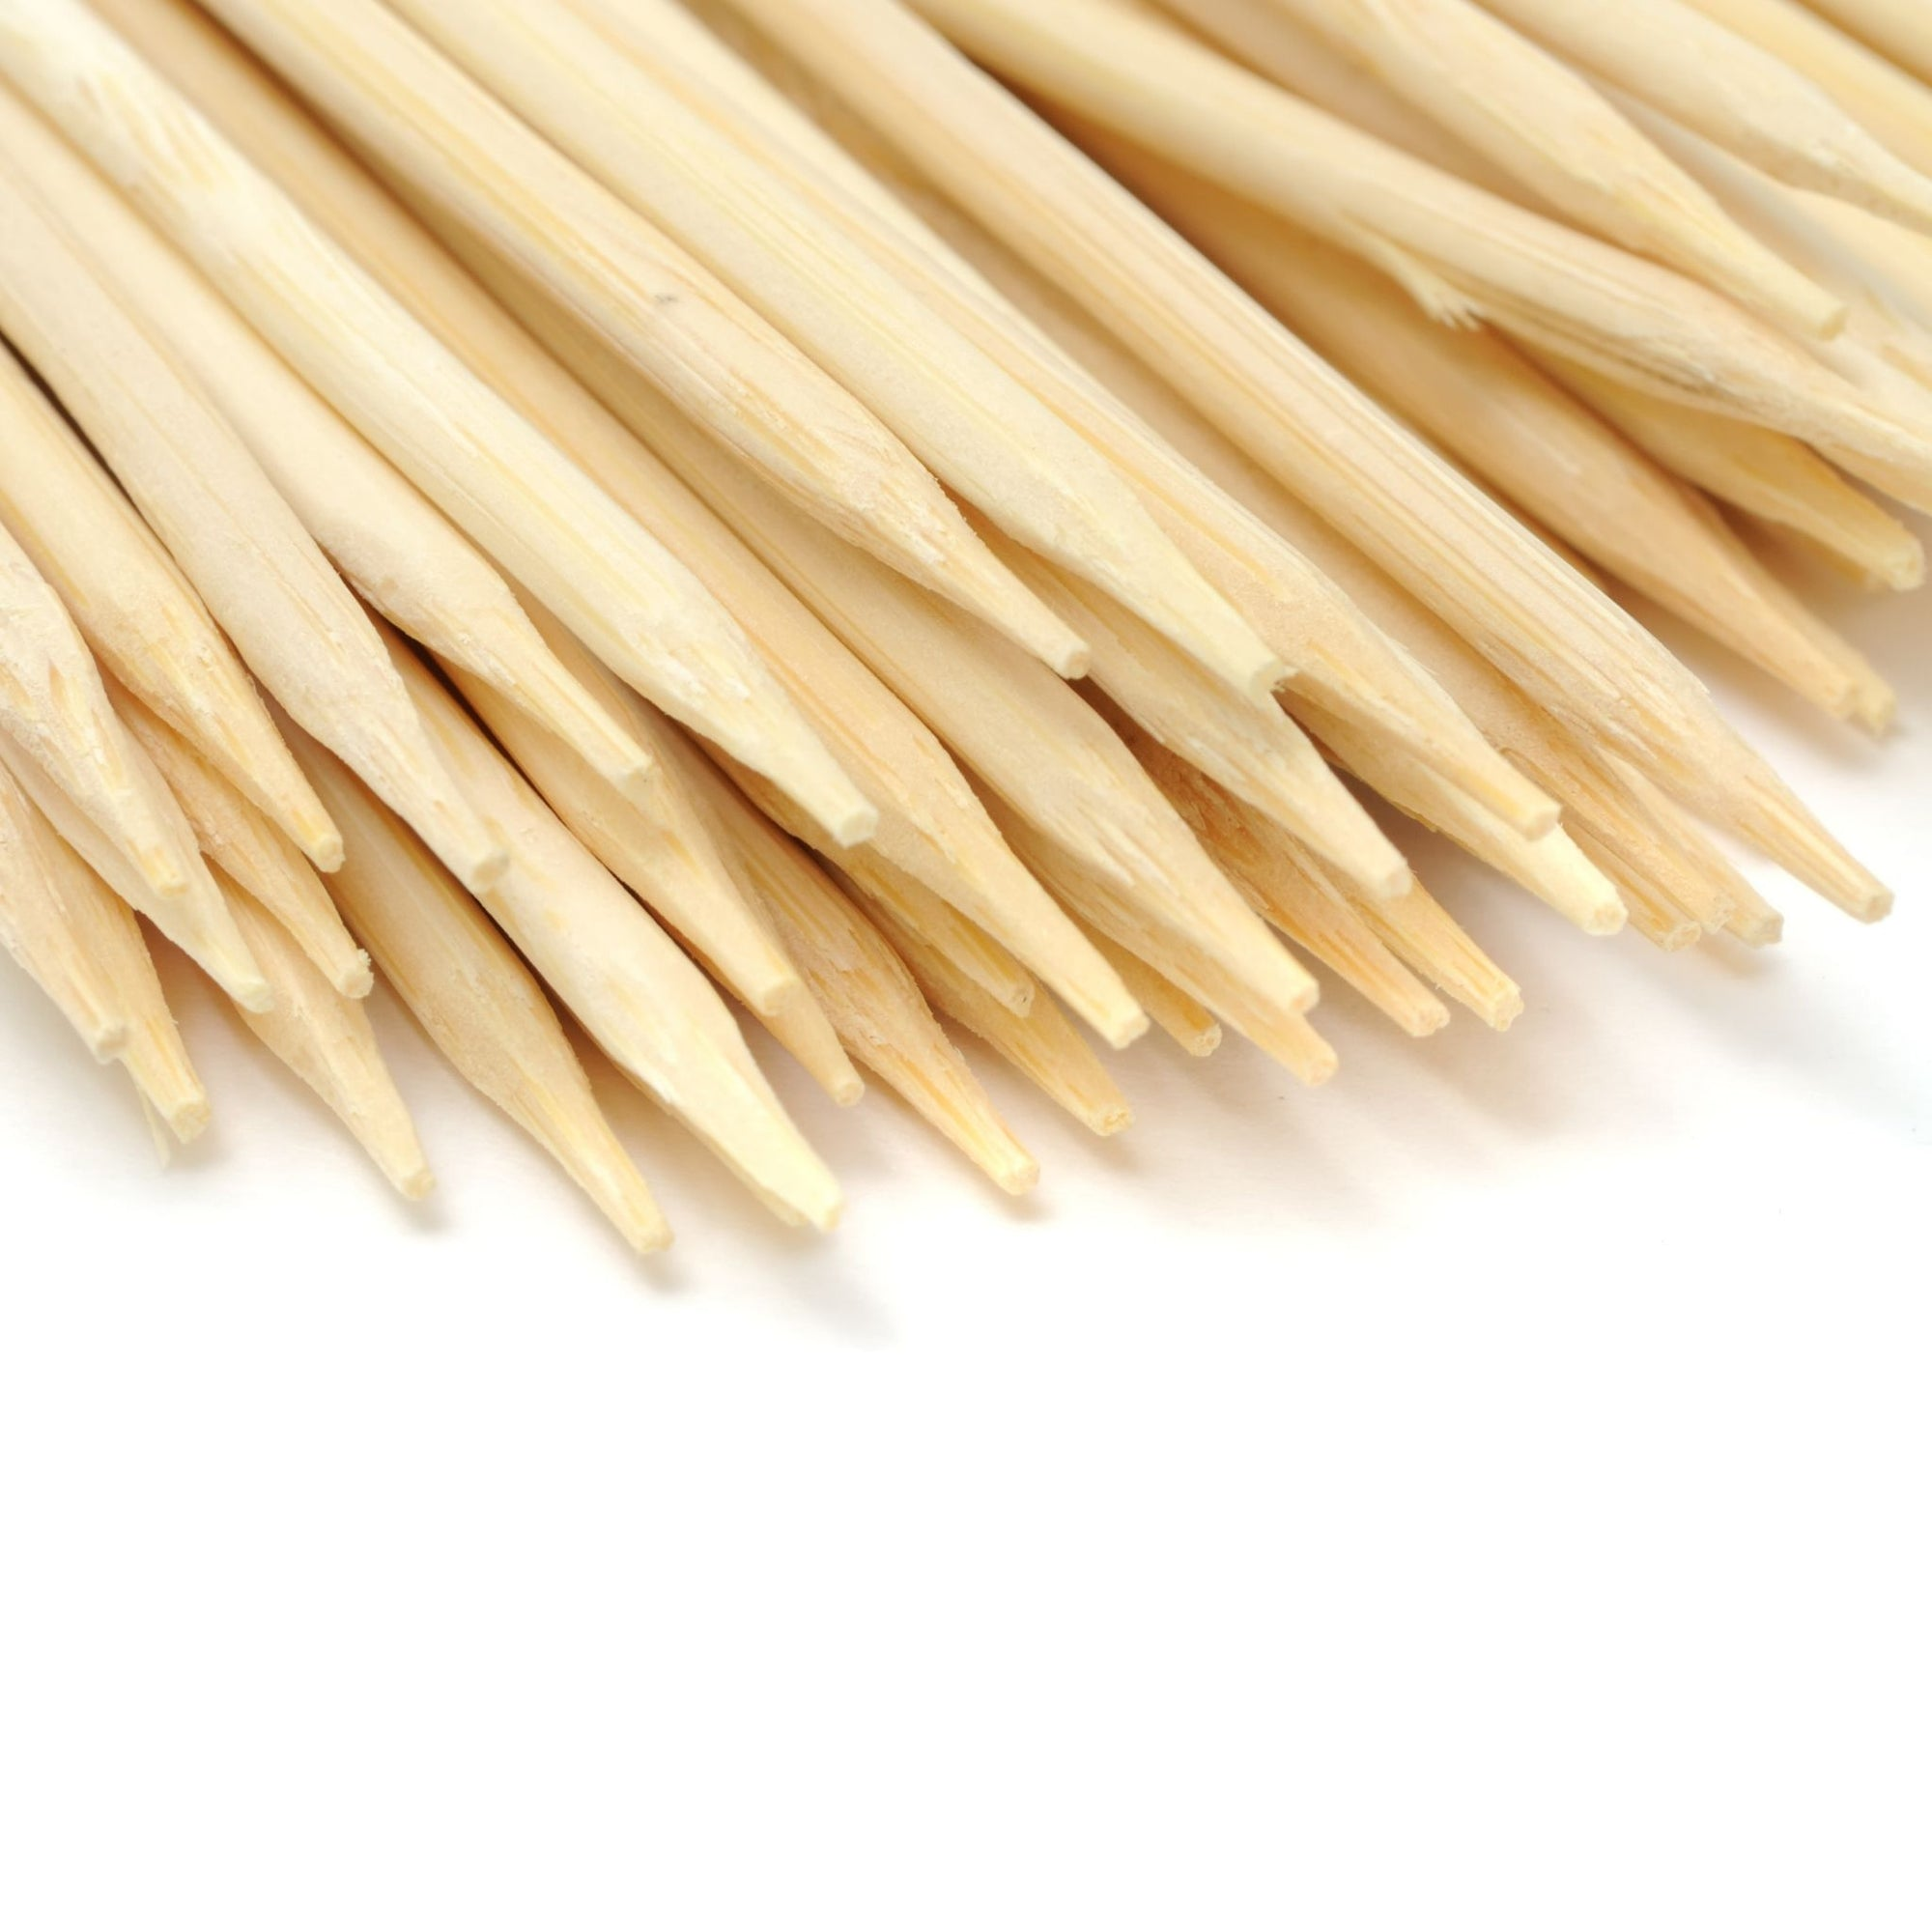 Bamboo Skewers 6 Inch (200 per packet)